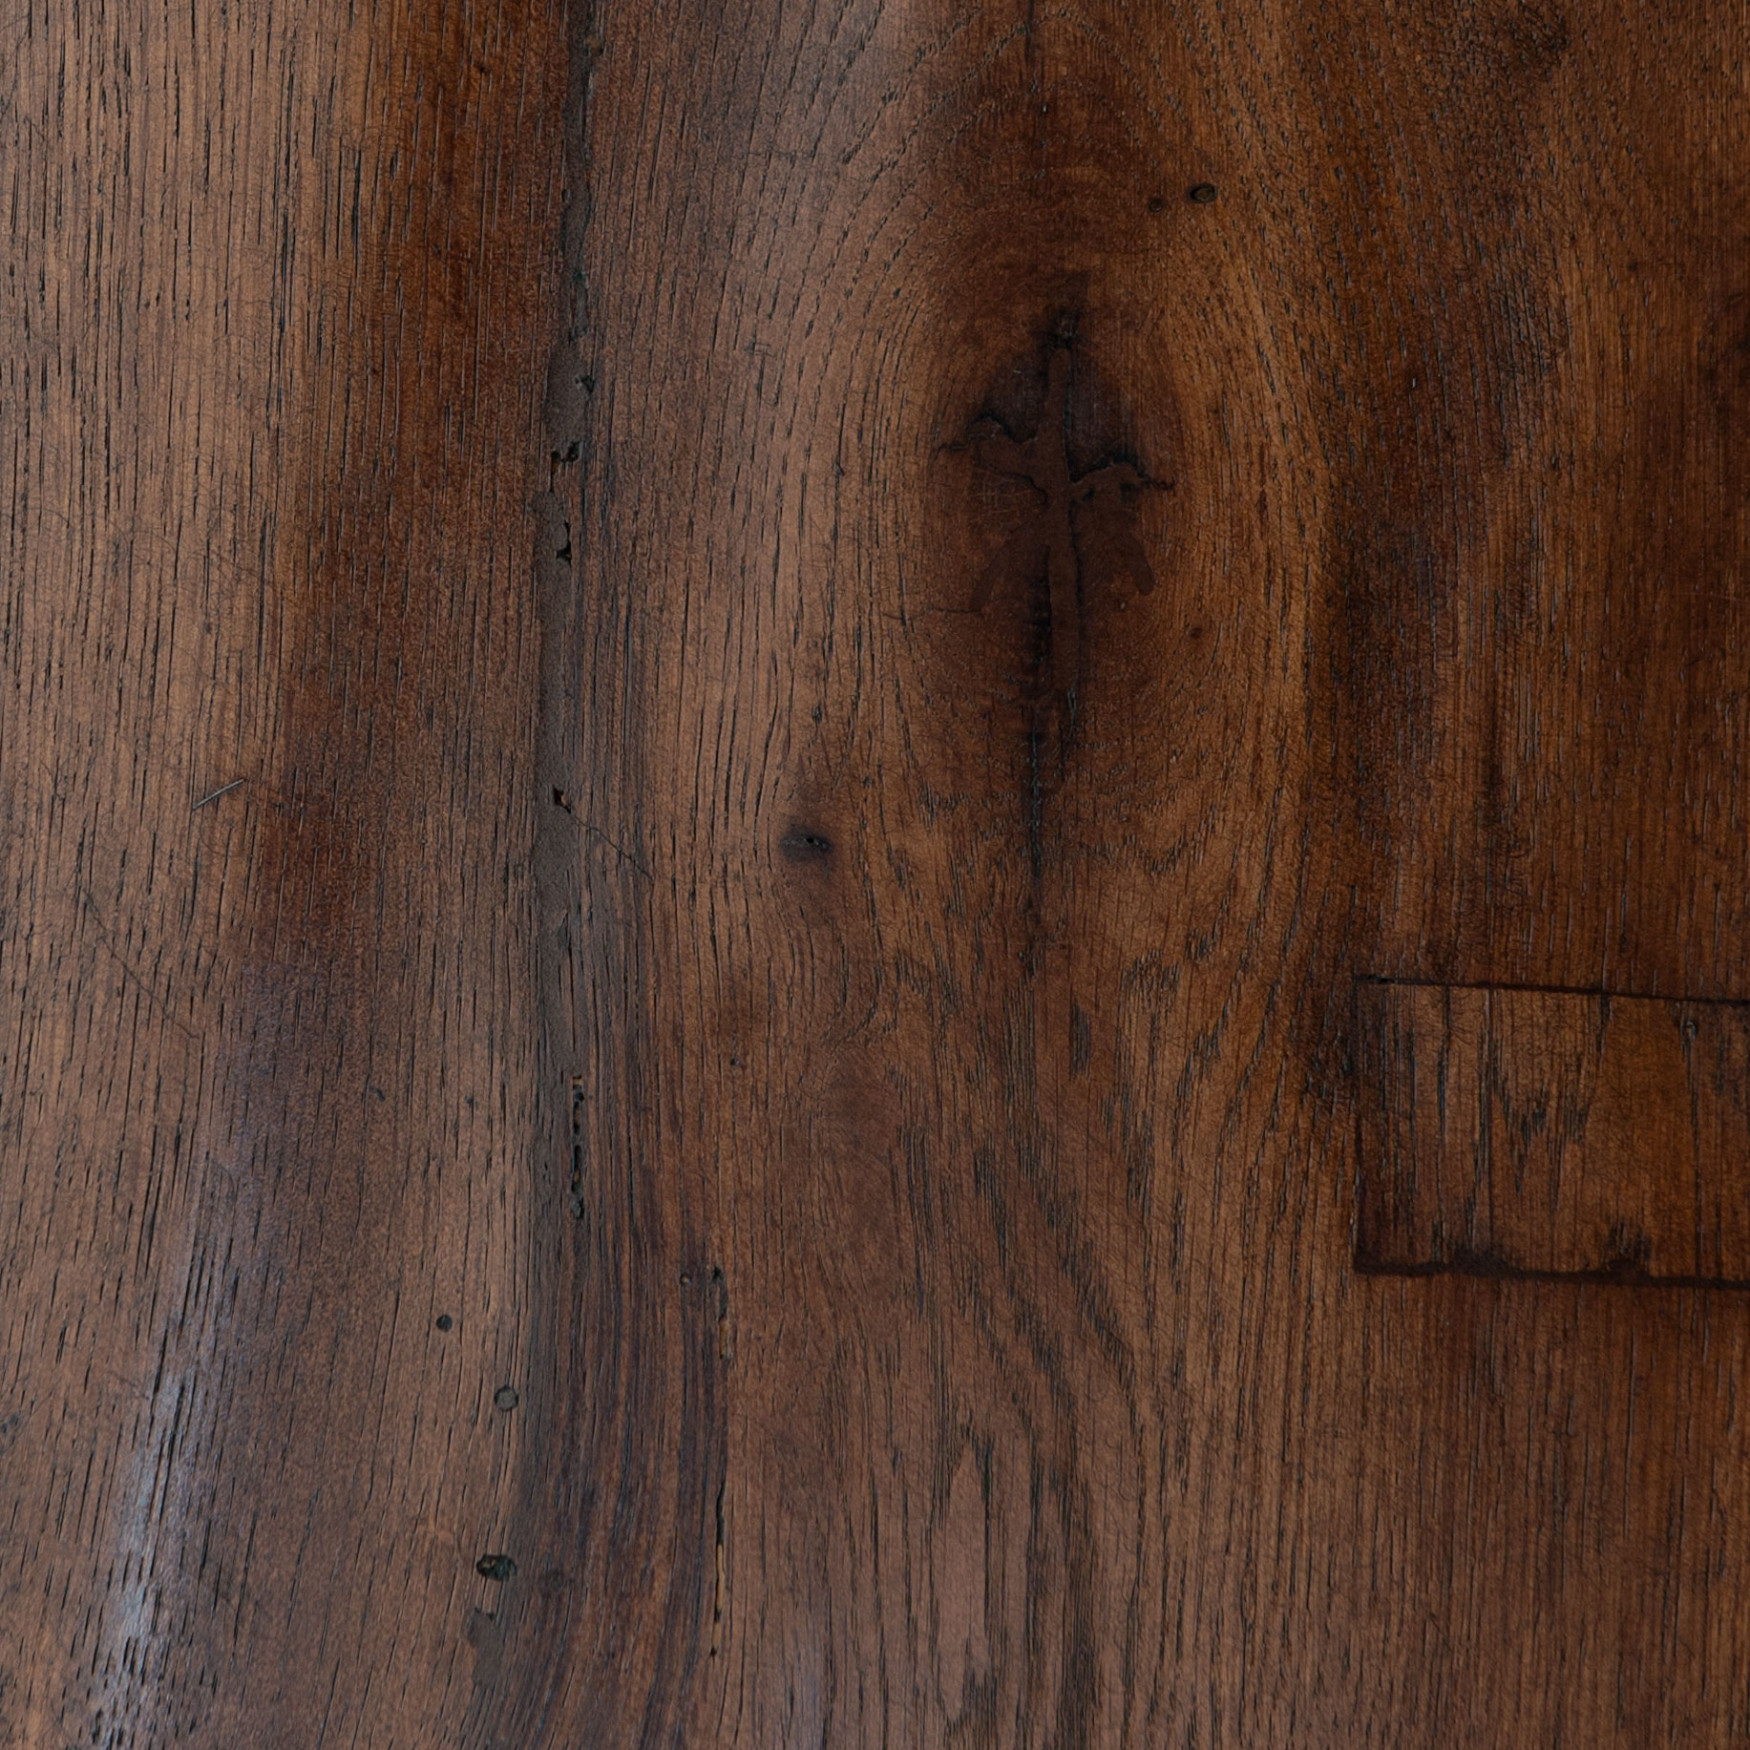 Element7-wide-plank-samples-reclaimed-brown-oak-class-IMG_1926.CMYK-RT